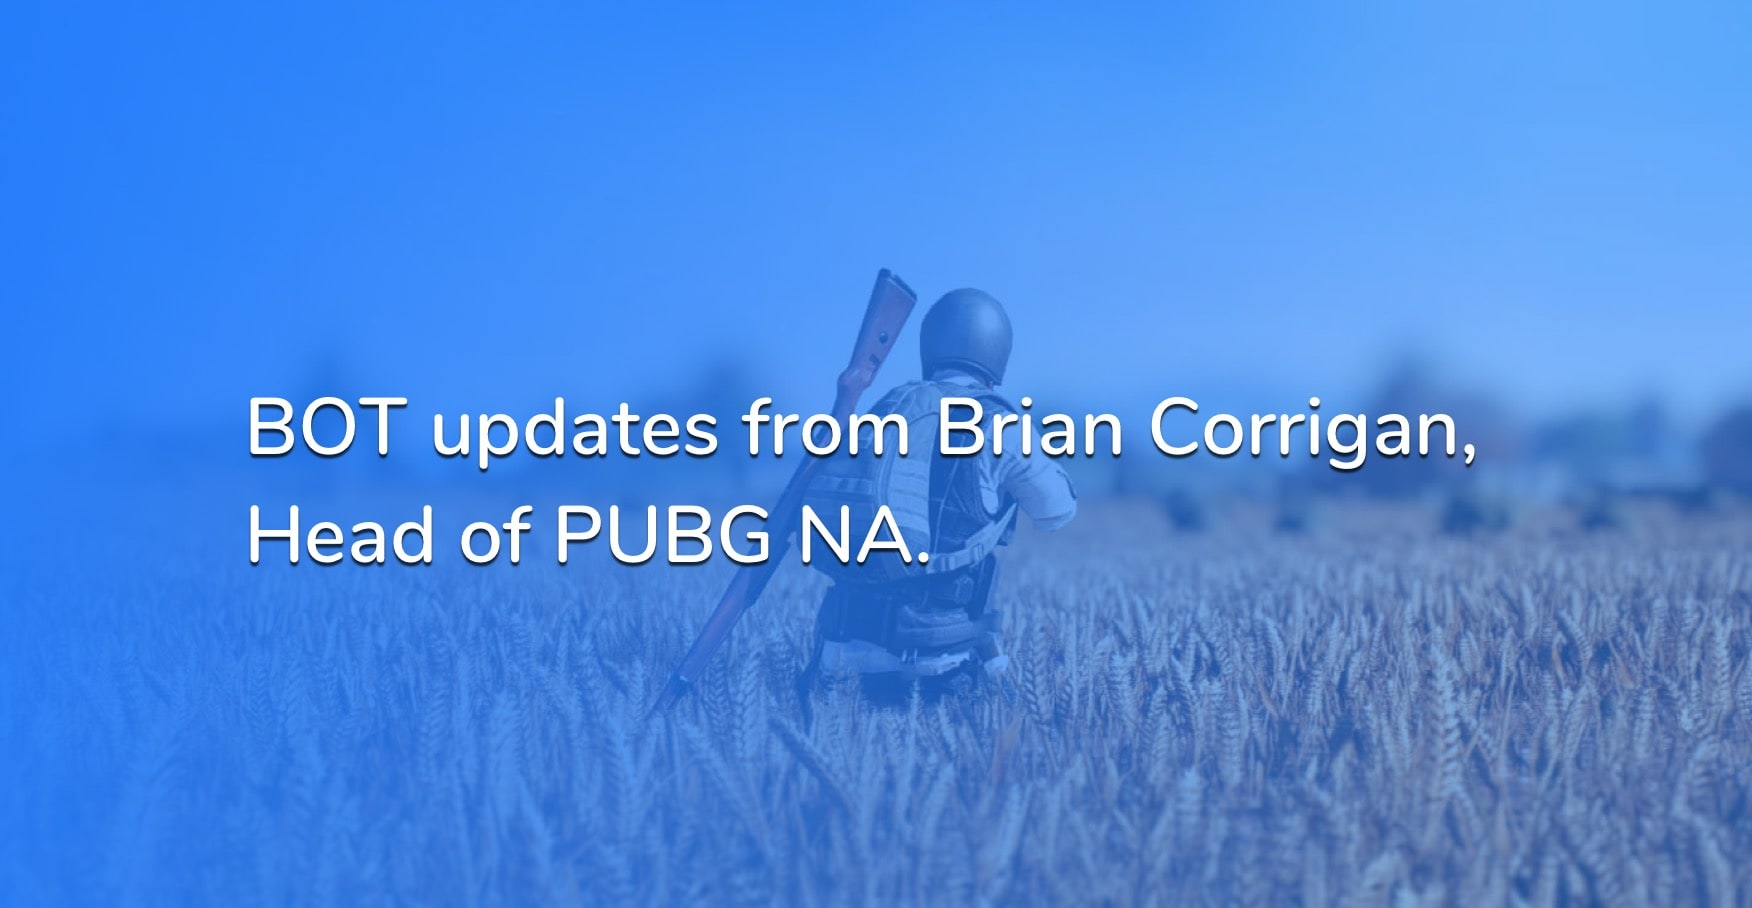 PUBG responds to BOTS. Brian Corrigan's discussion on Discord